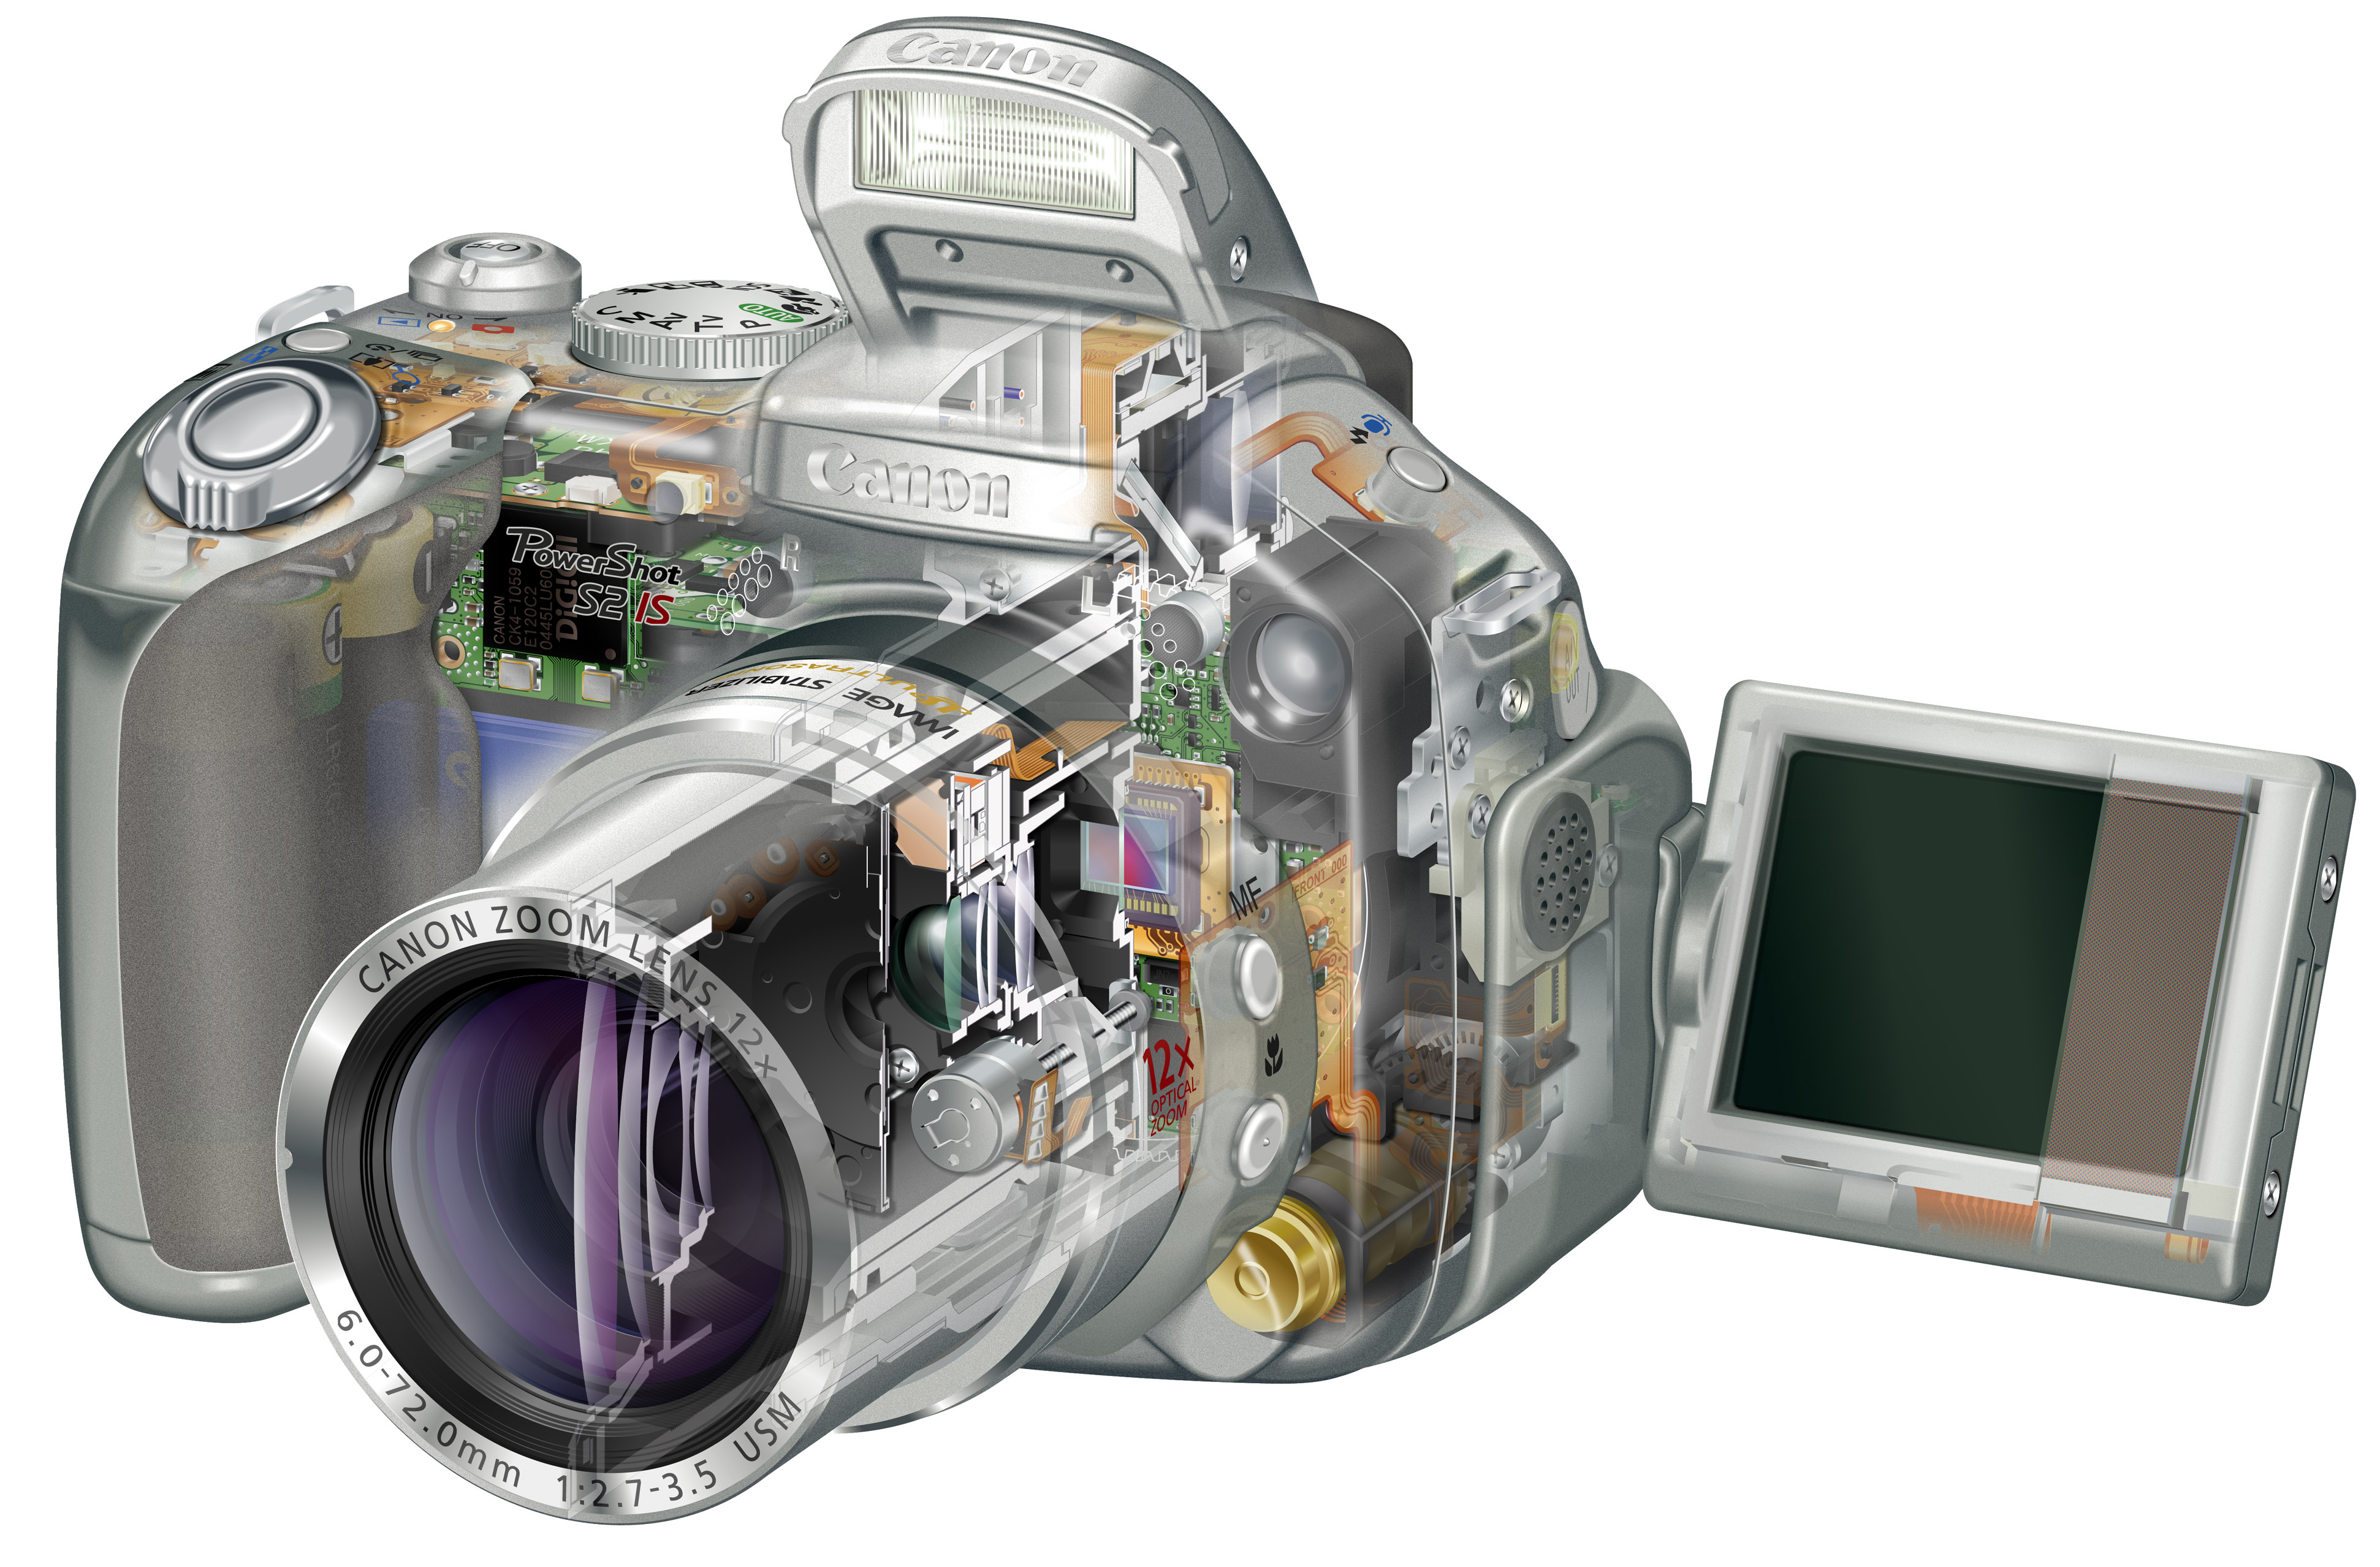 Canon powershot a300 specifications